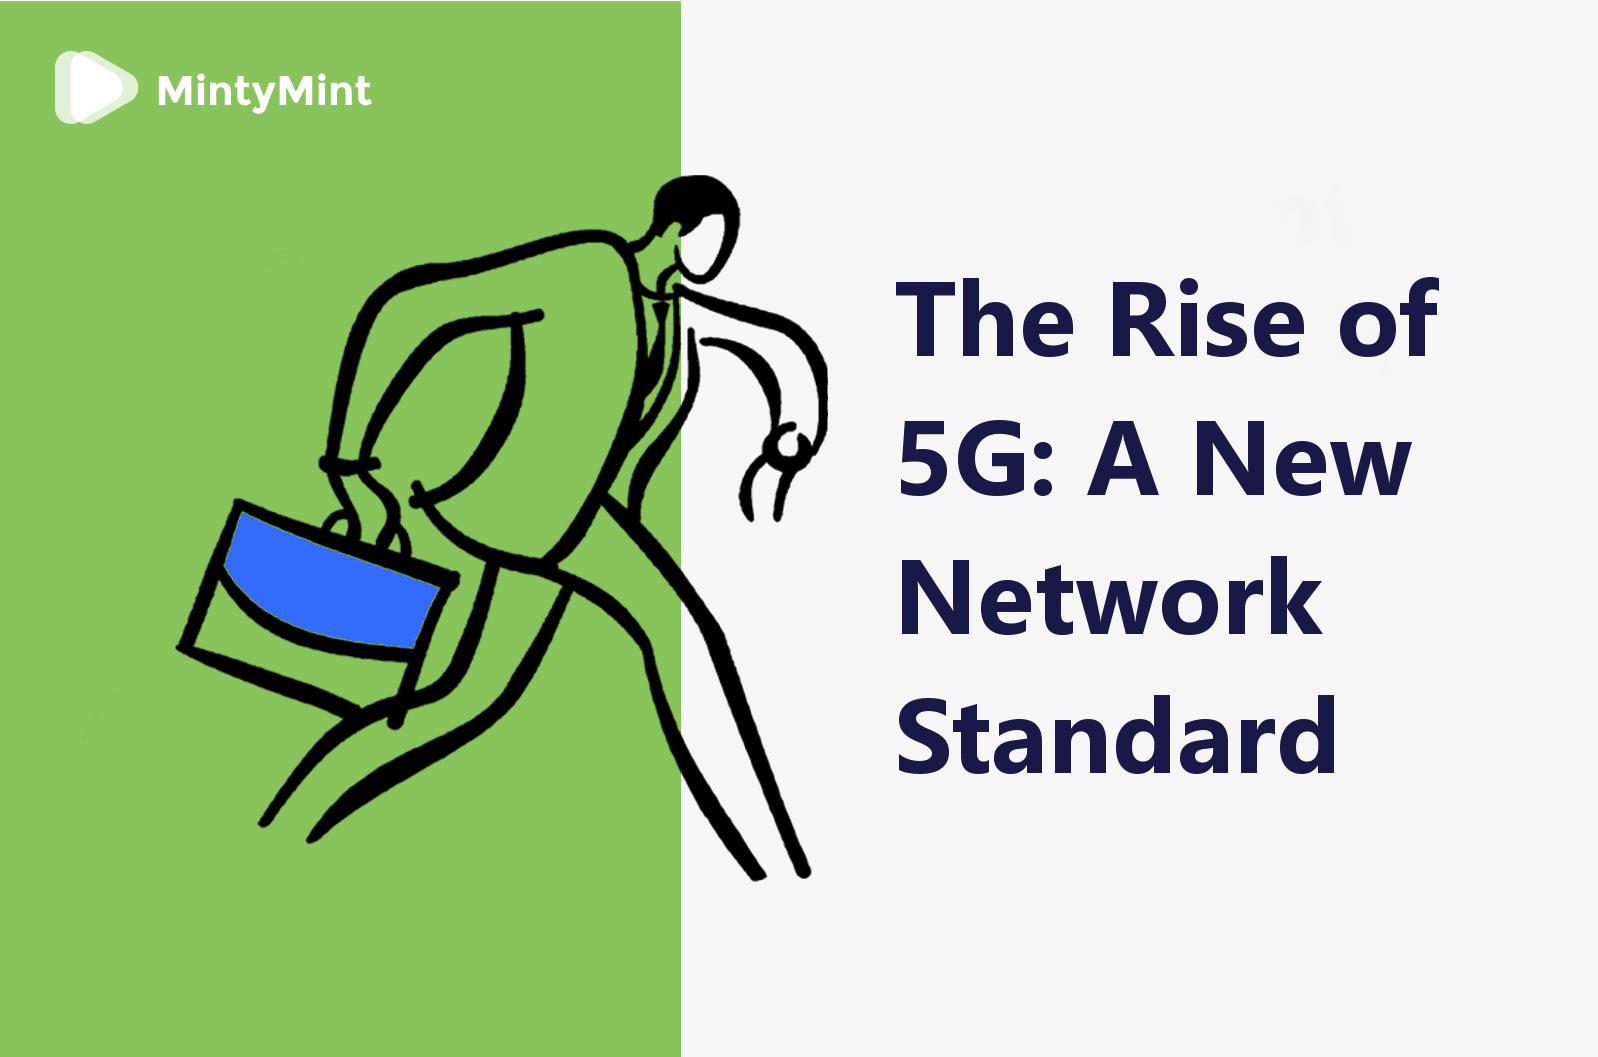 The Rise of 5G: A New Network Standard